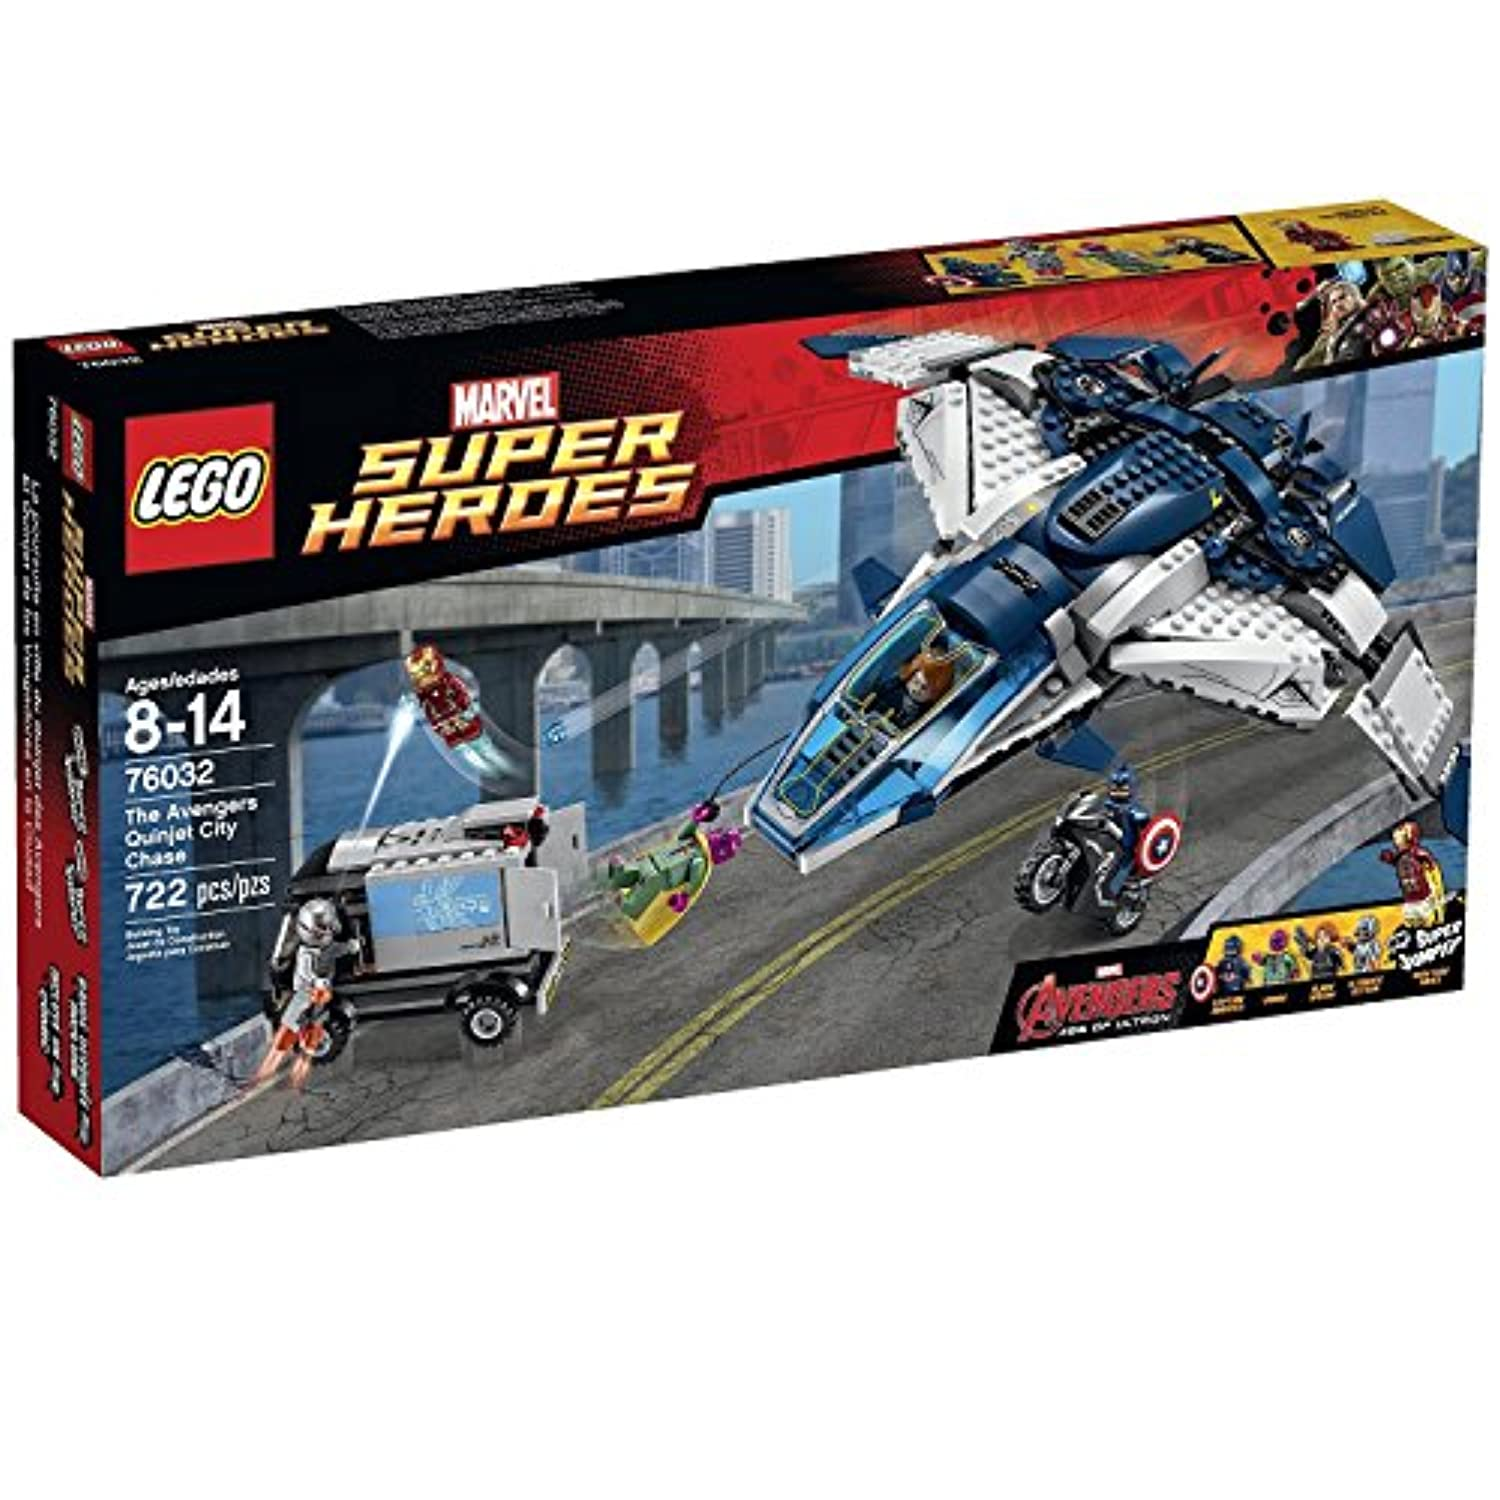 722 Pieces, the Avengers Quinjet City Chase Building Toy